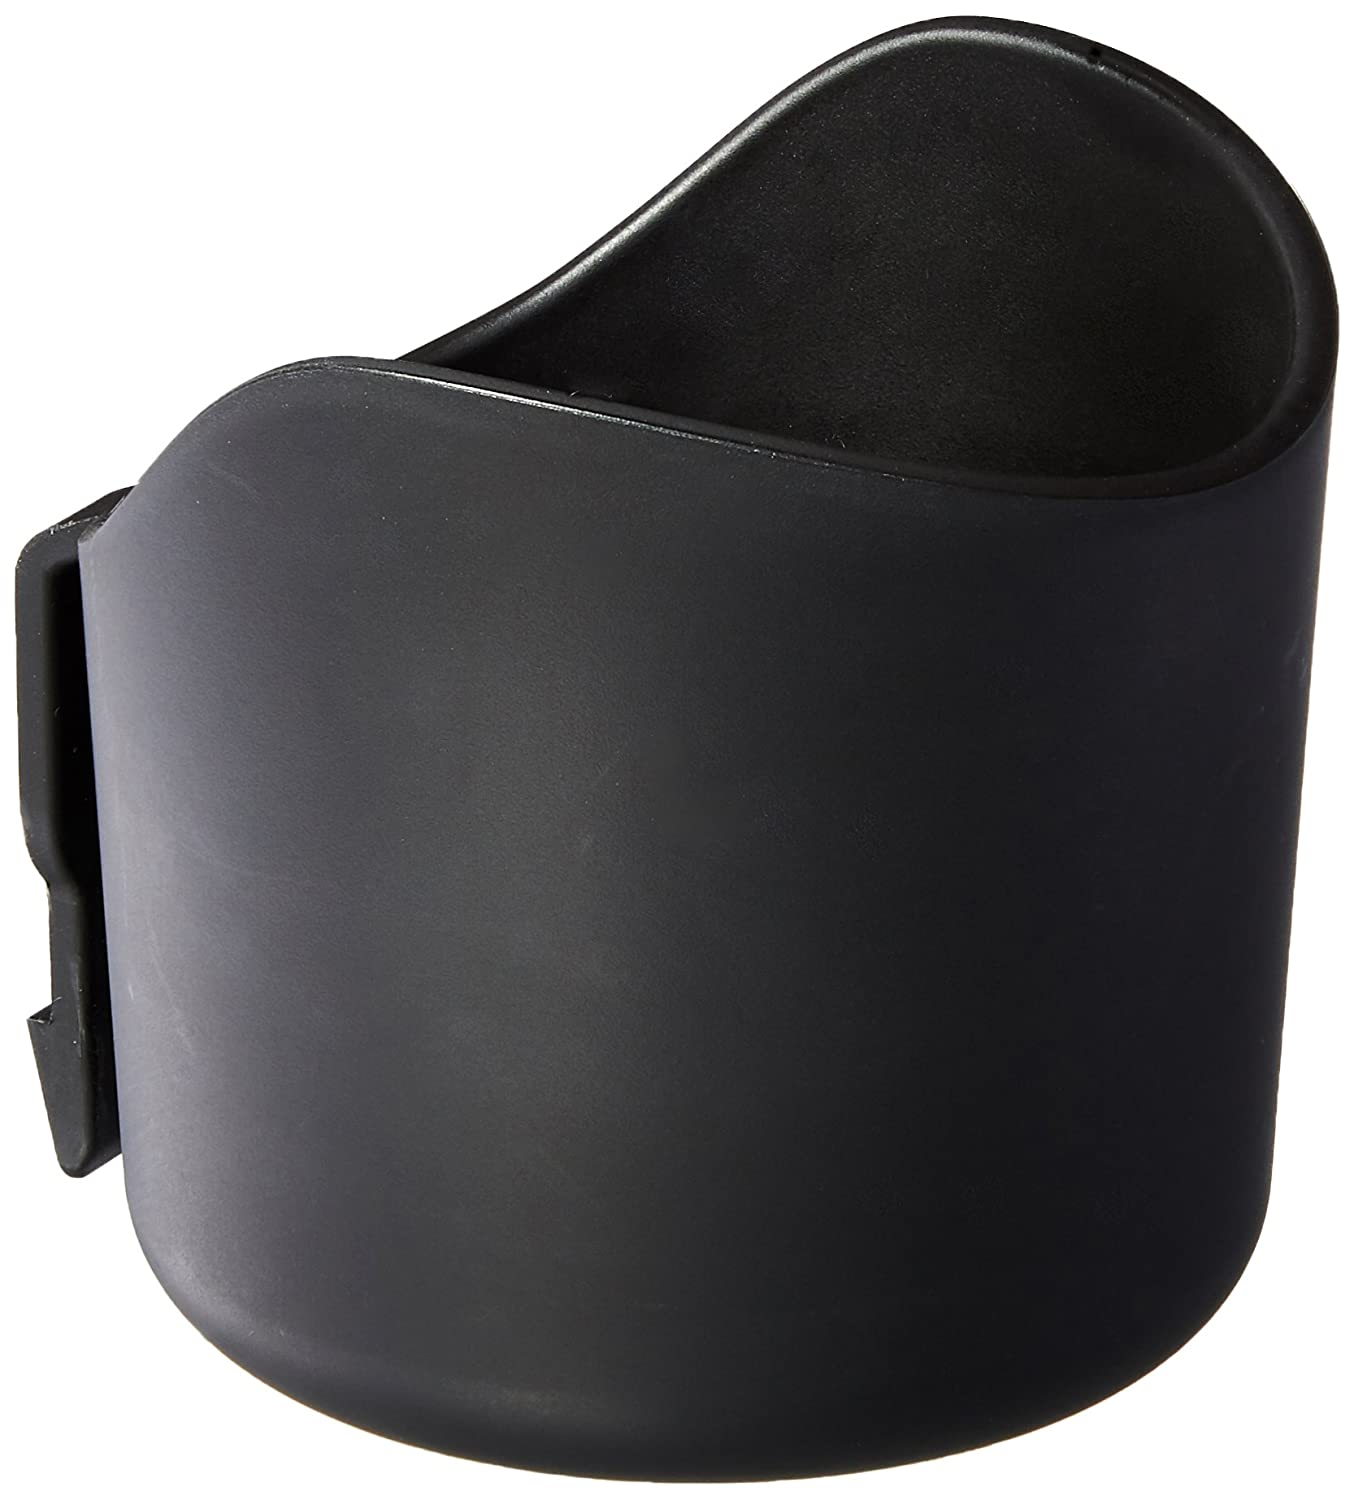 Clek Foonf/Fllo Drink Thingy Cup Holder, Black